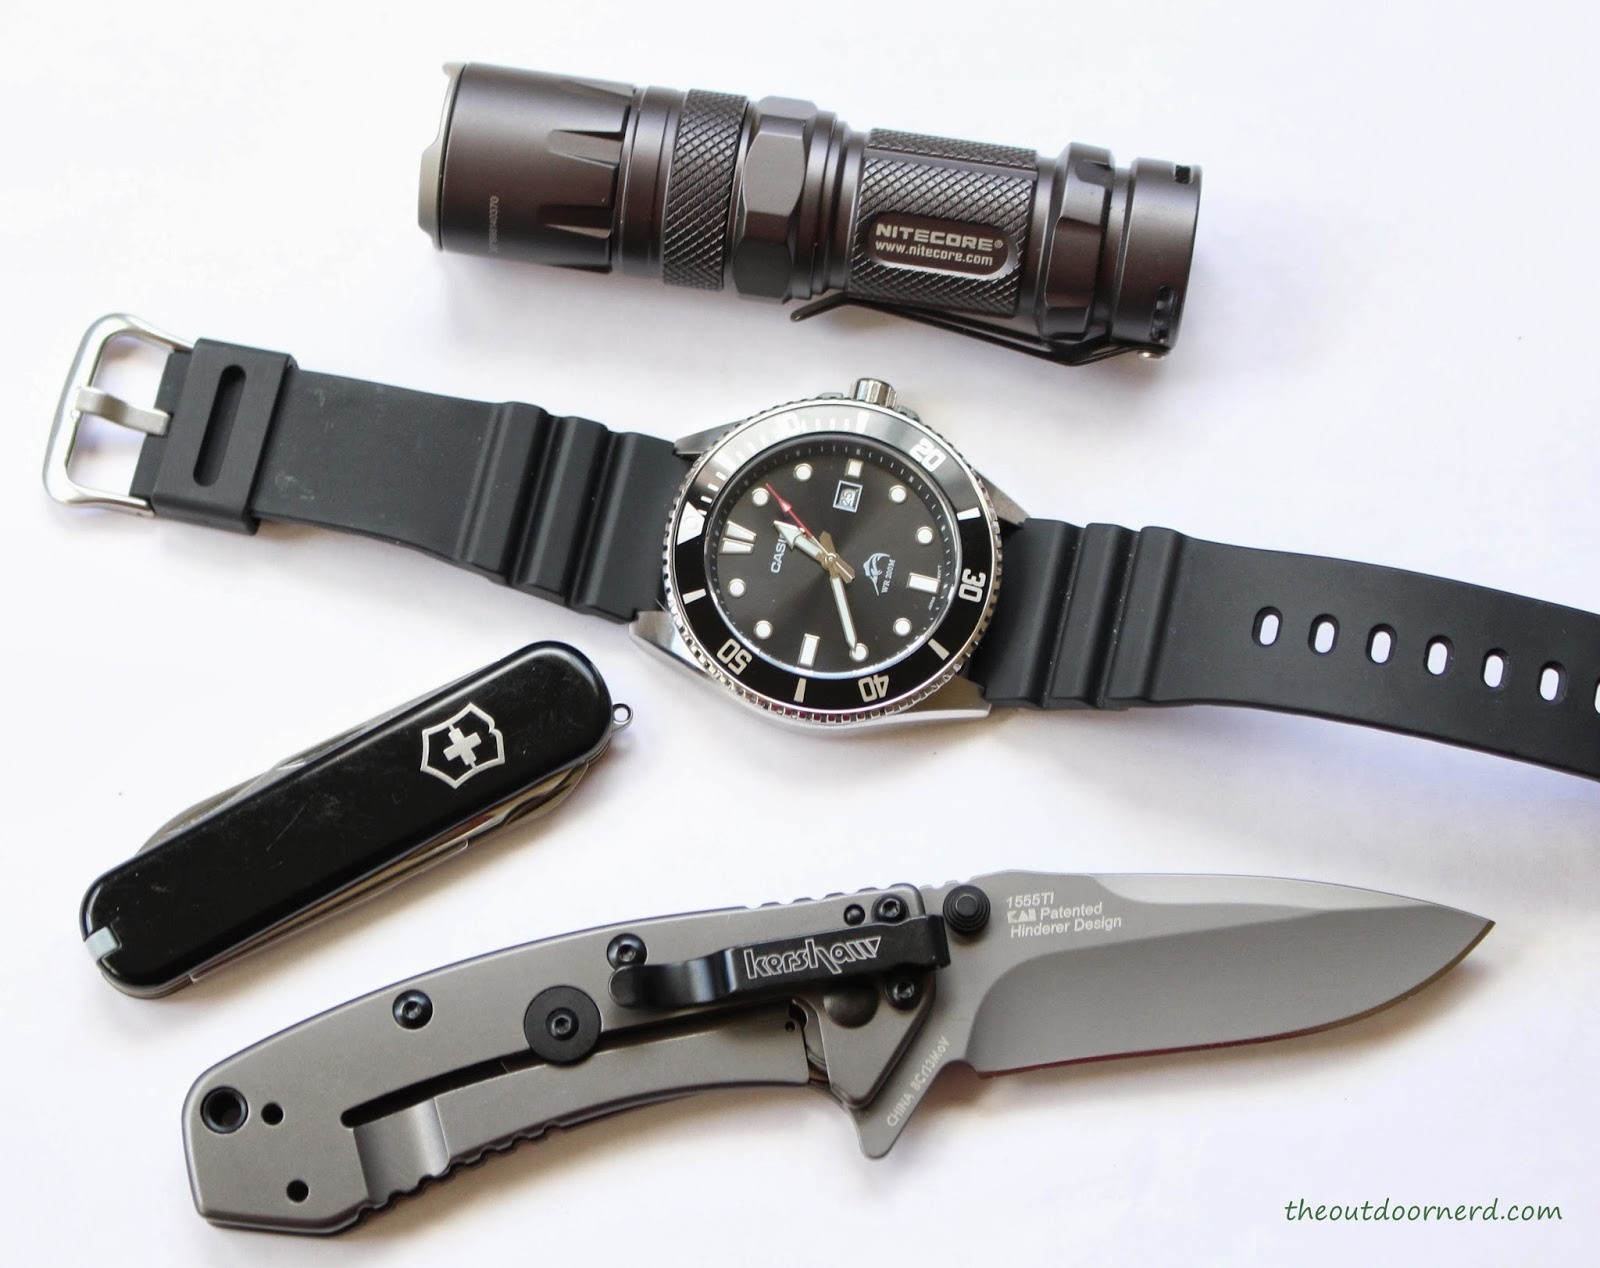 Kershaw Cryo EDC Pocket Knife: Shown With Nitecore SRT3 Flashlight, Casio Watch and Victorinox Executive Pocket Knife